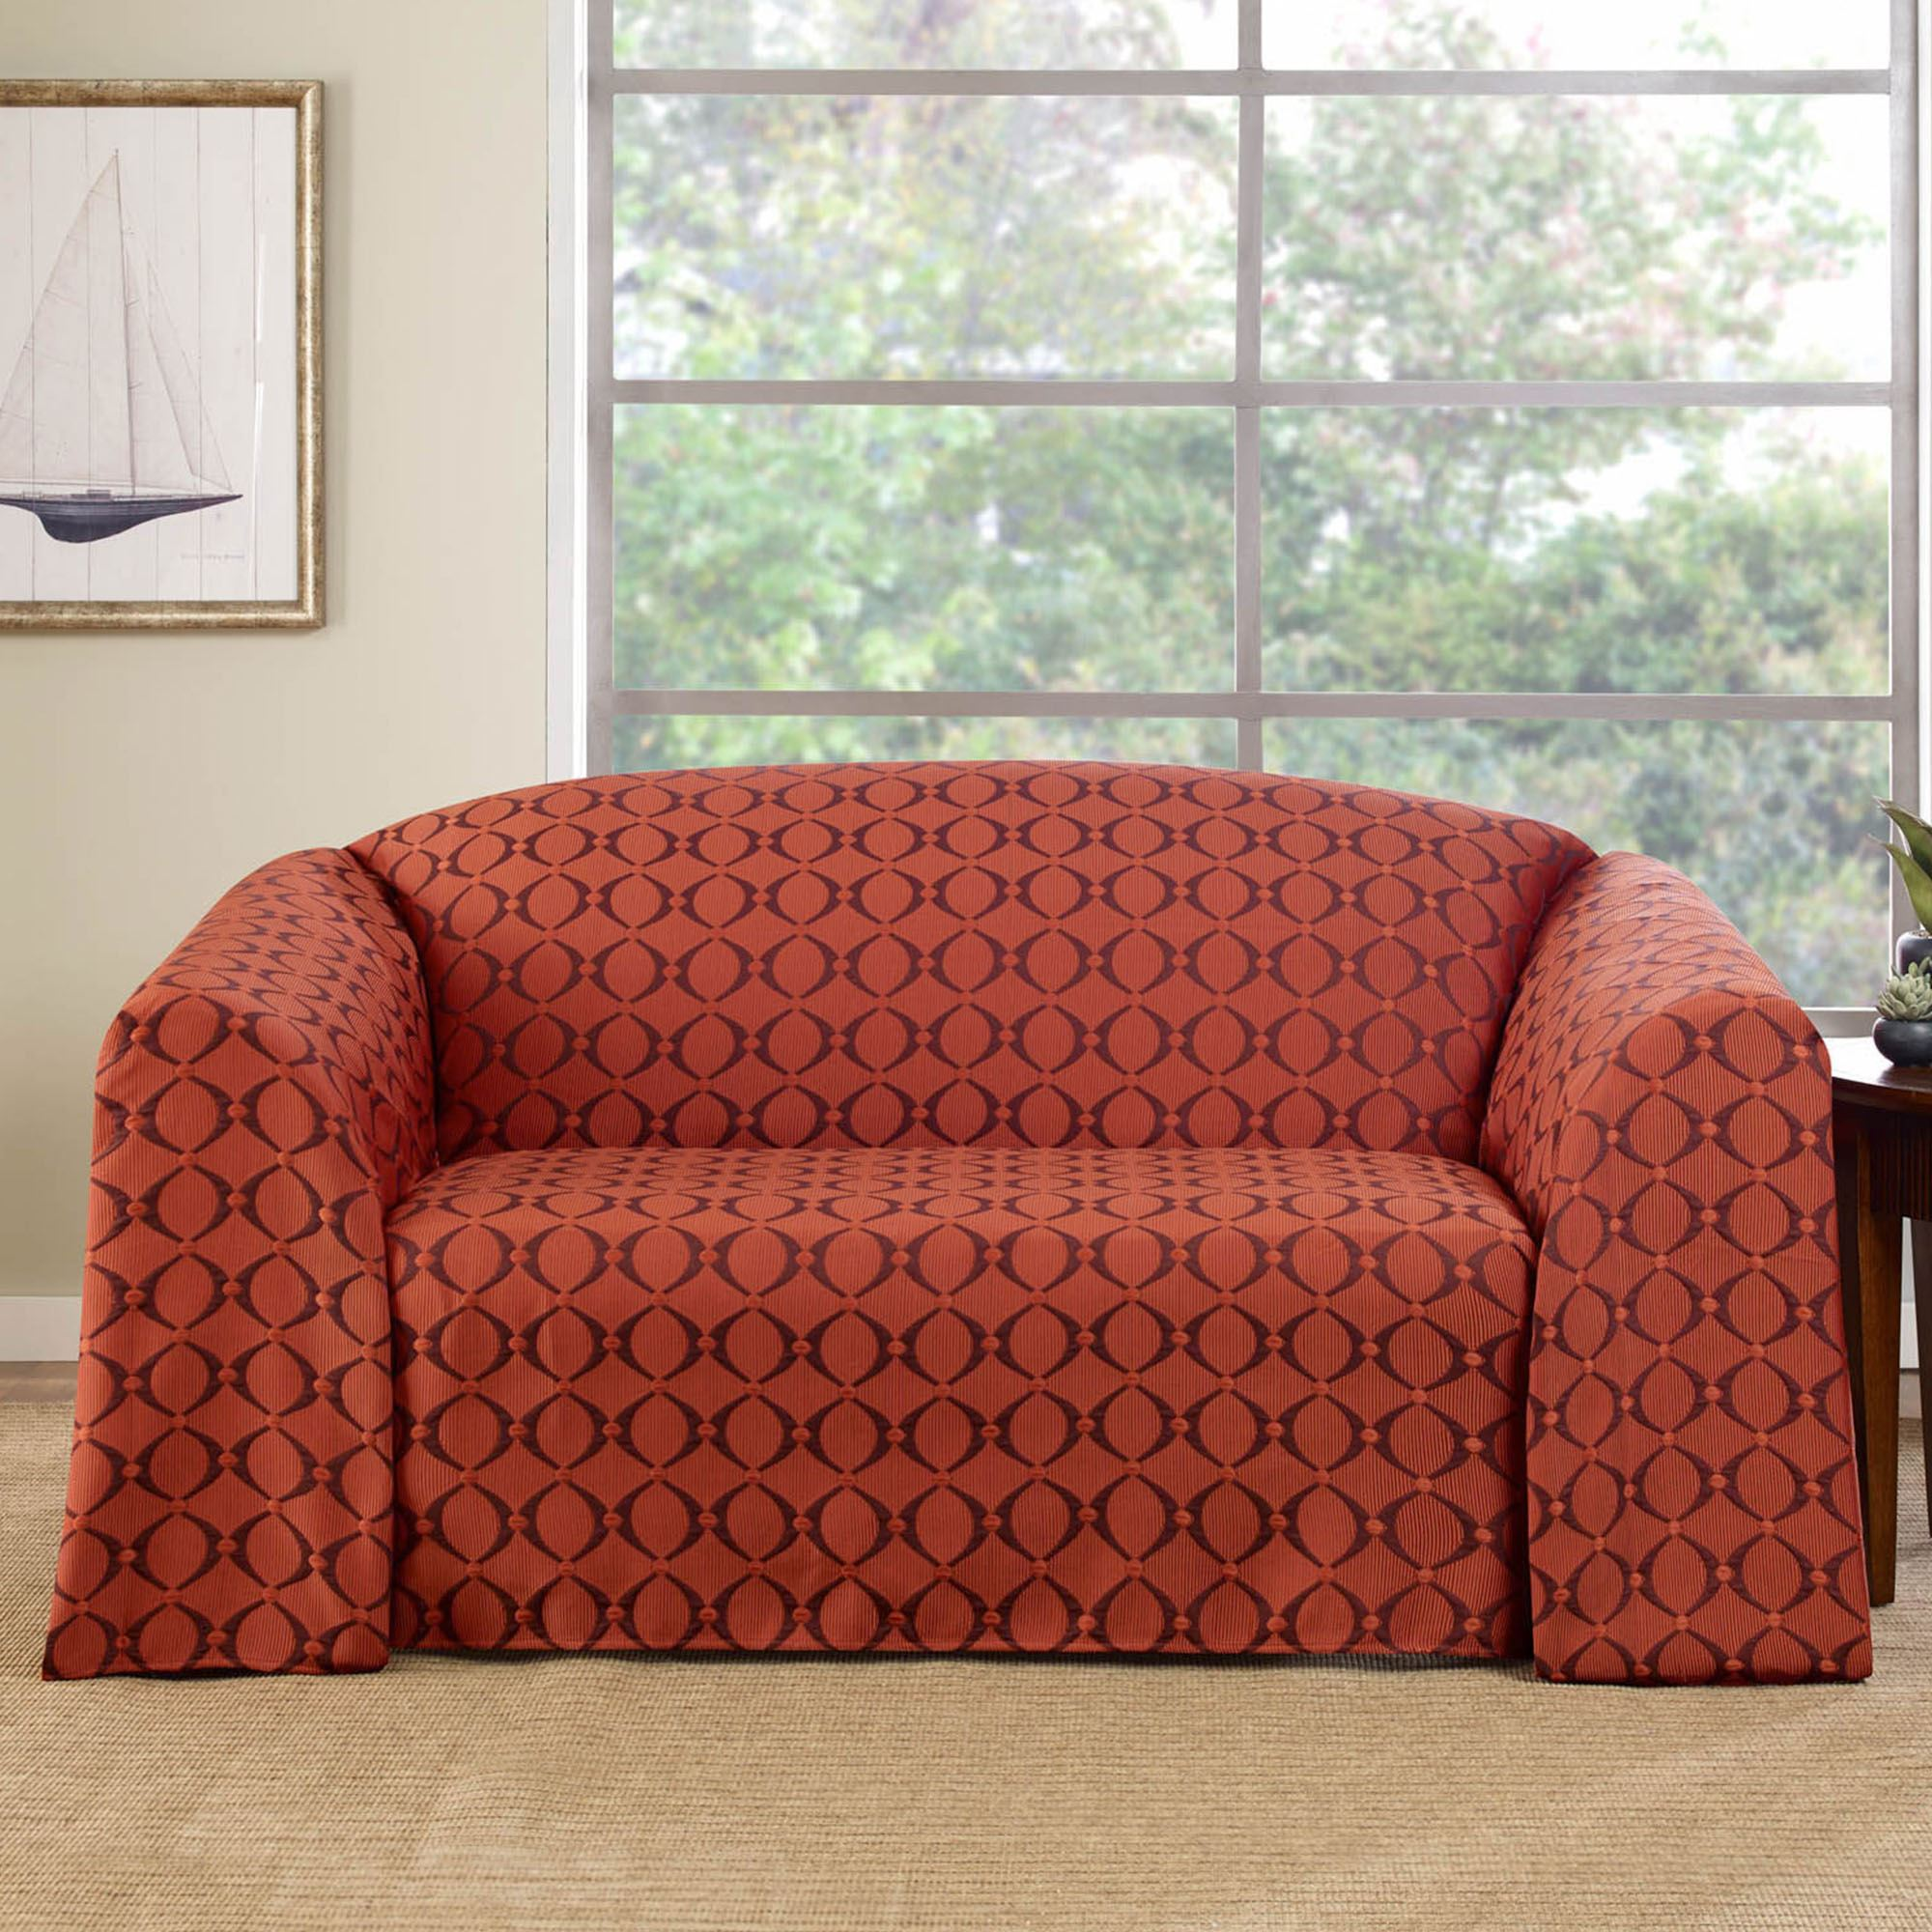 Pleasing Raiden Patterned Drapable Furniture Cover Ibusinesslaw Wood Chair Design Ideas Ibusinesslaworg